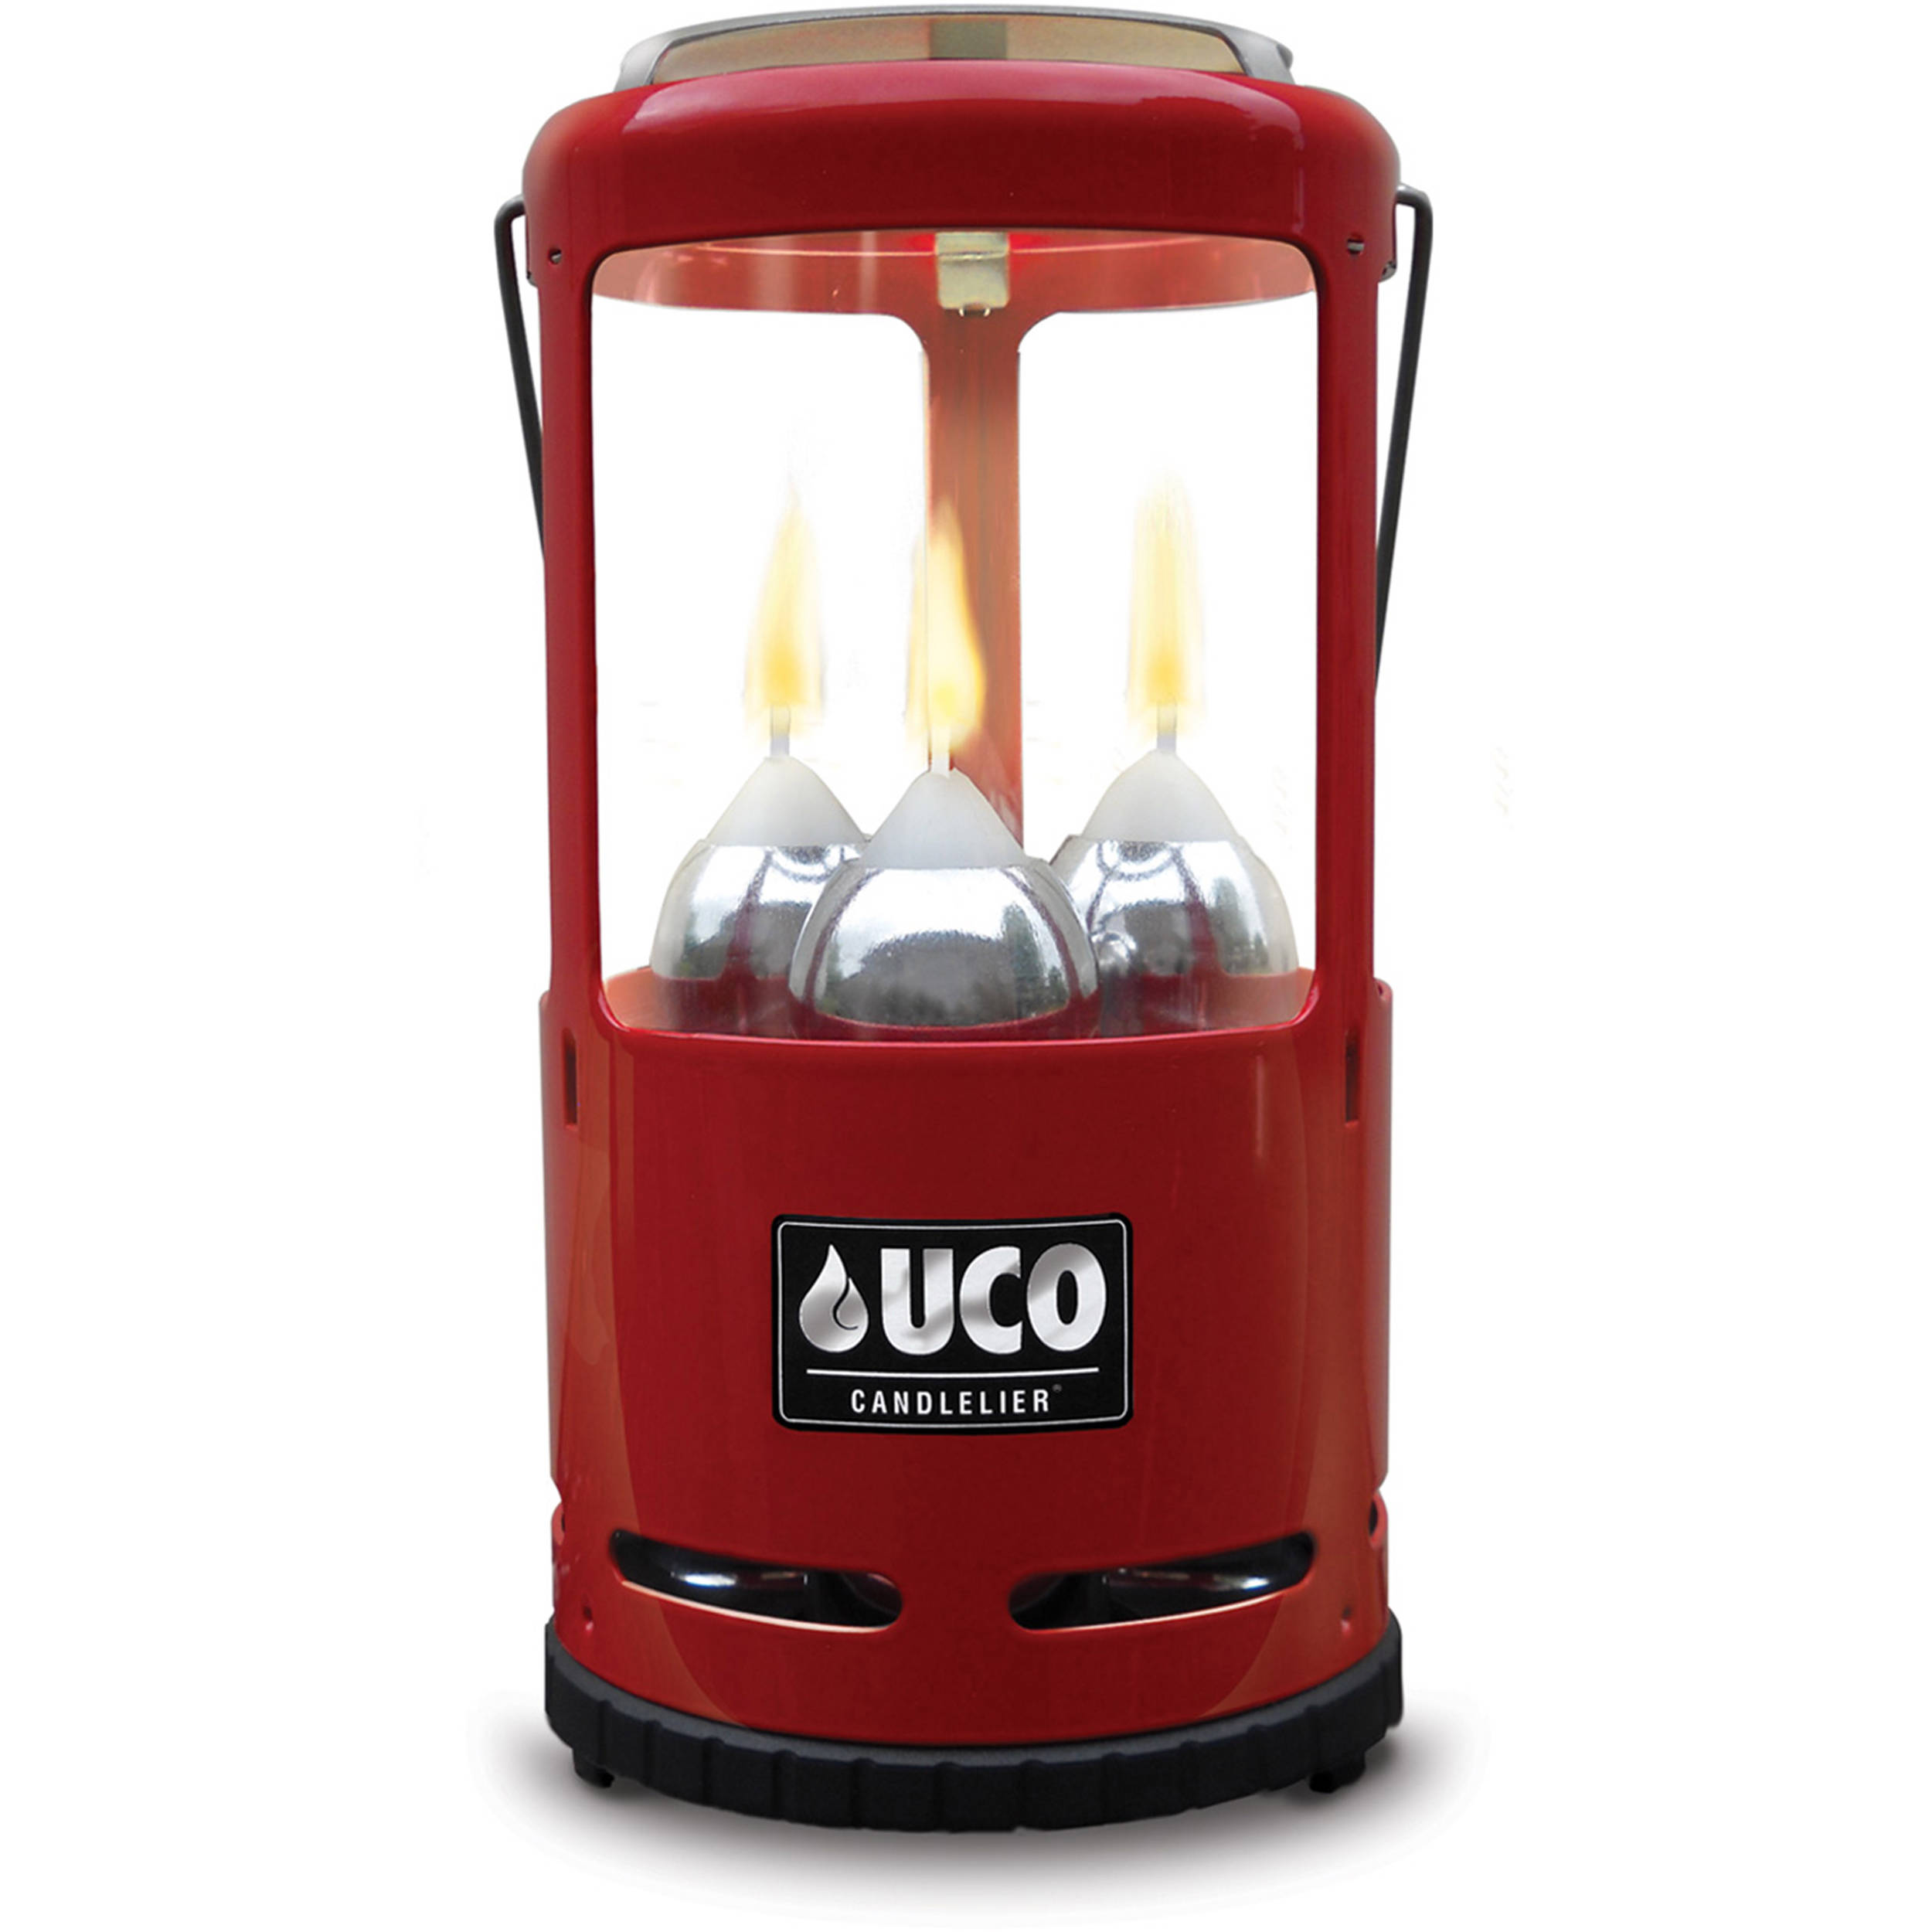 uco candle lantern instructions